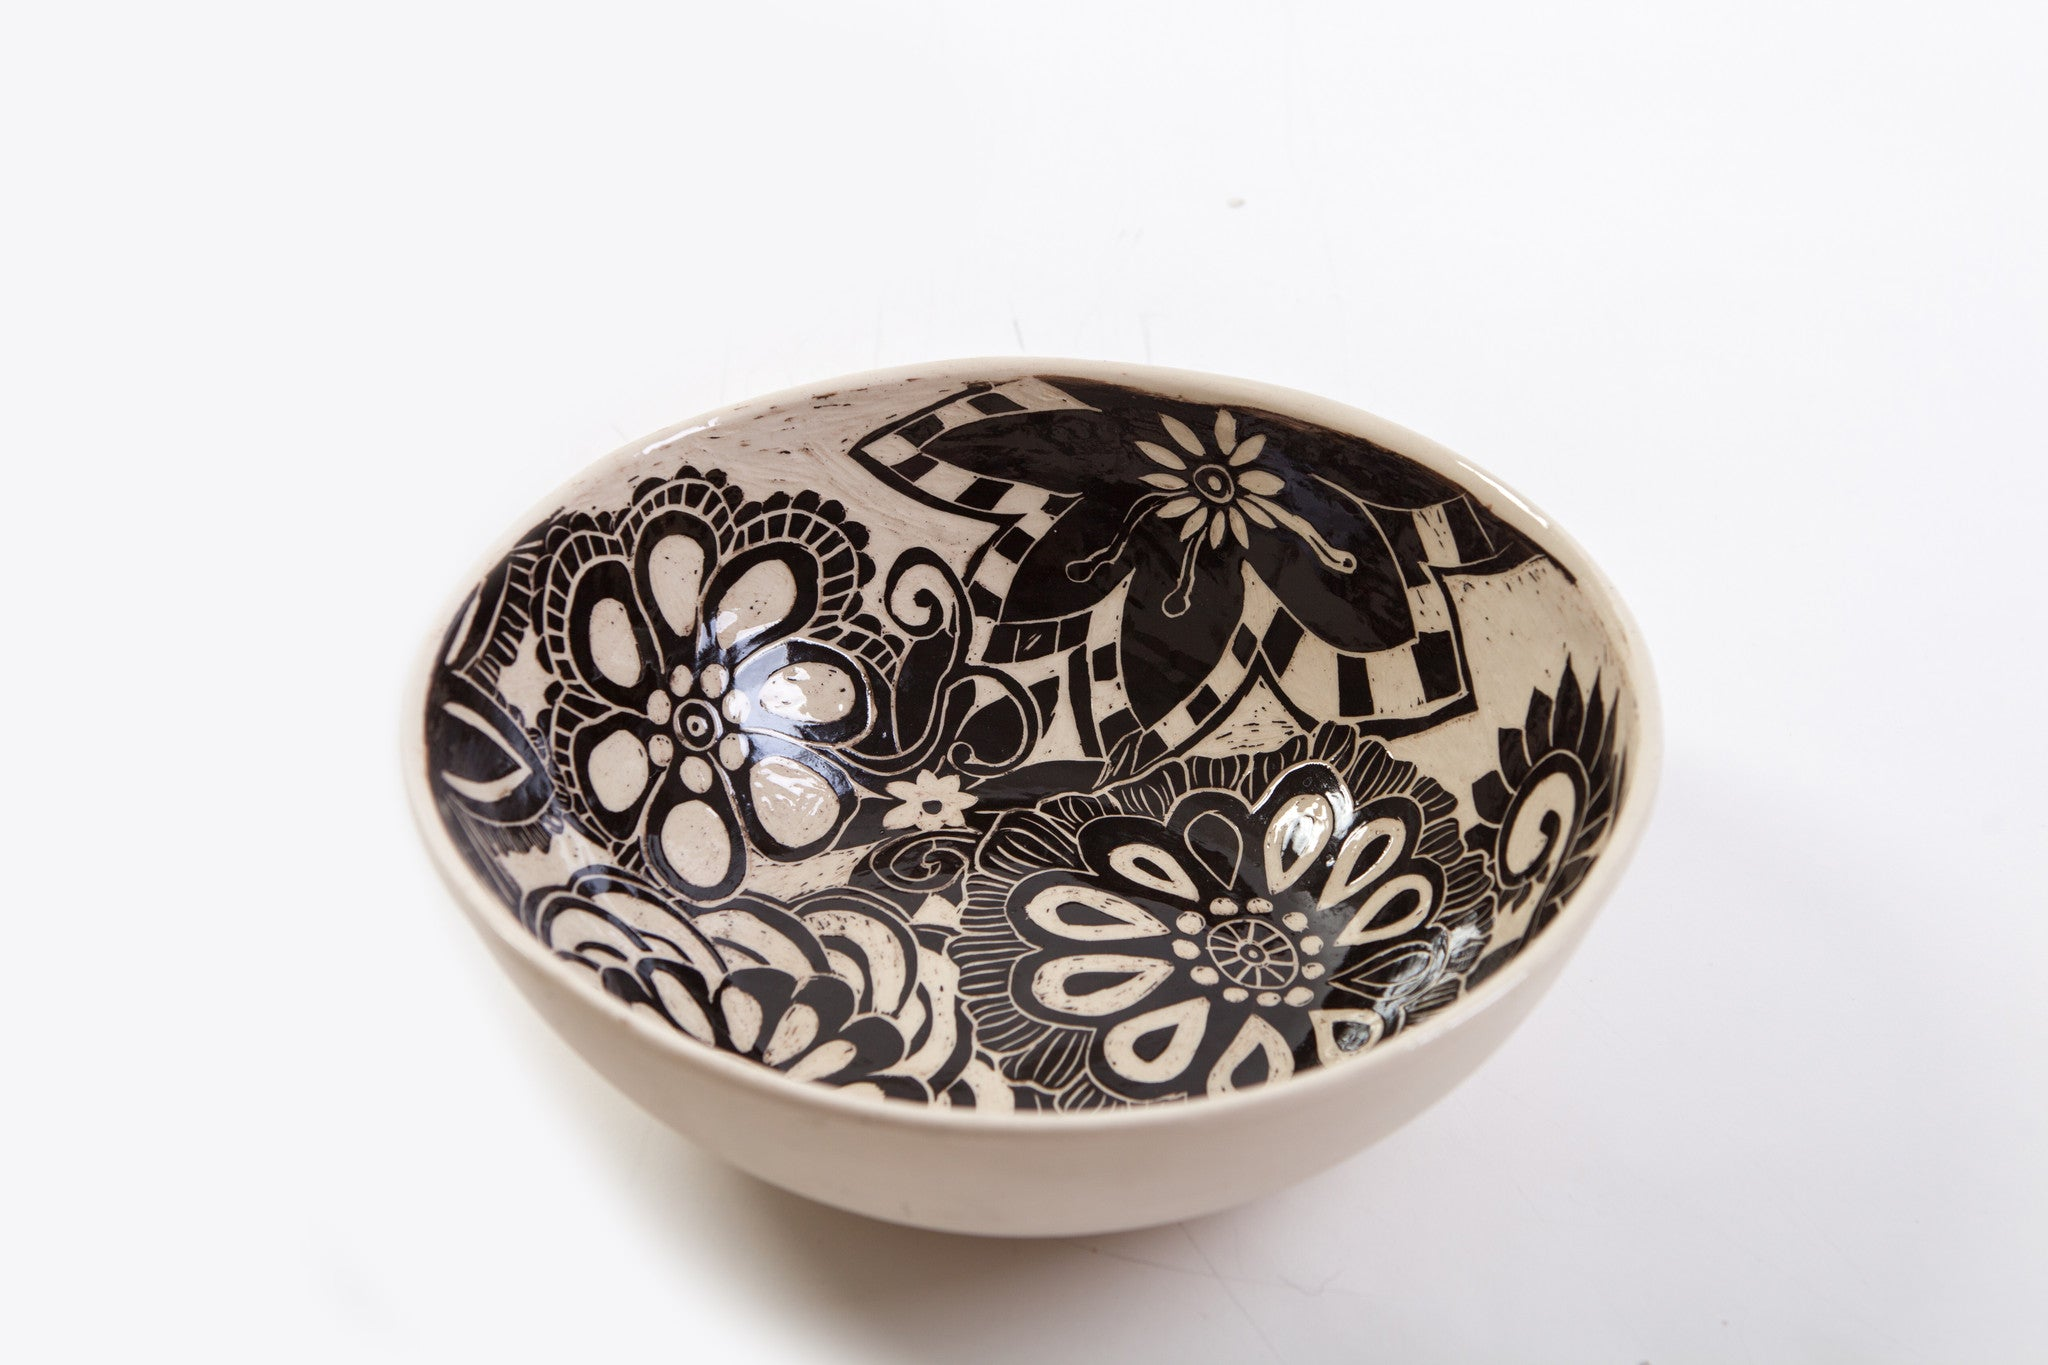 Glazed Black and White Sgraffito Ceramic Bowl with Flower Motif